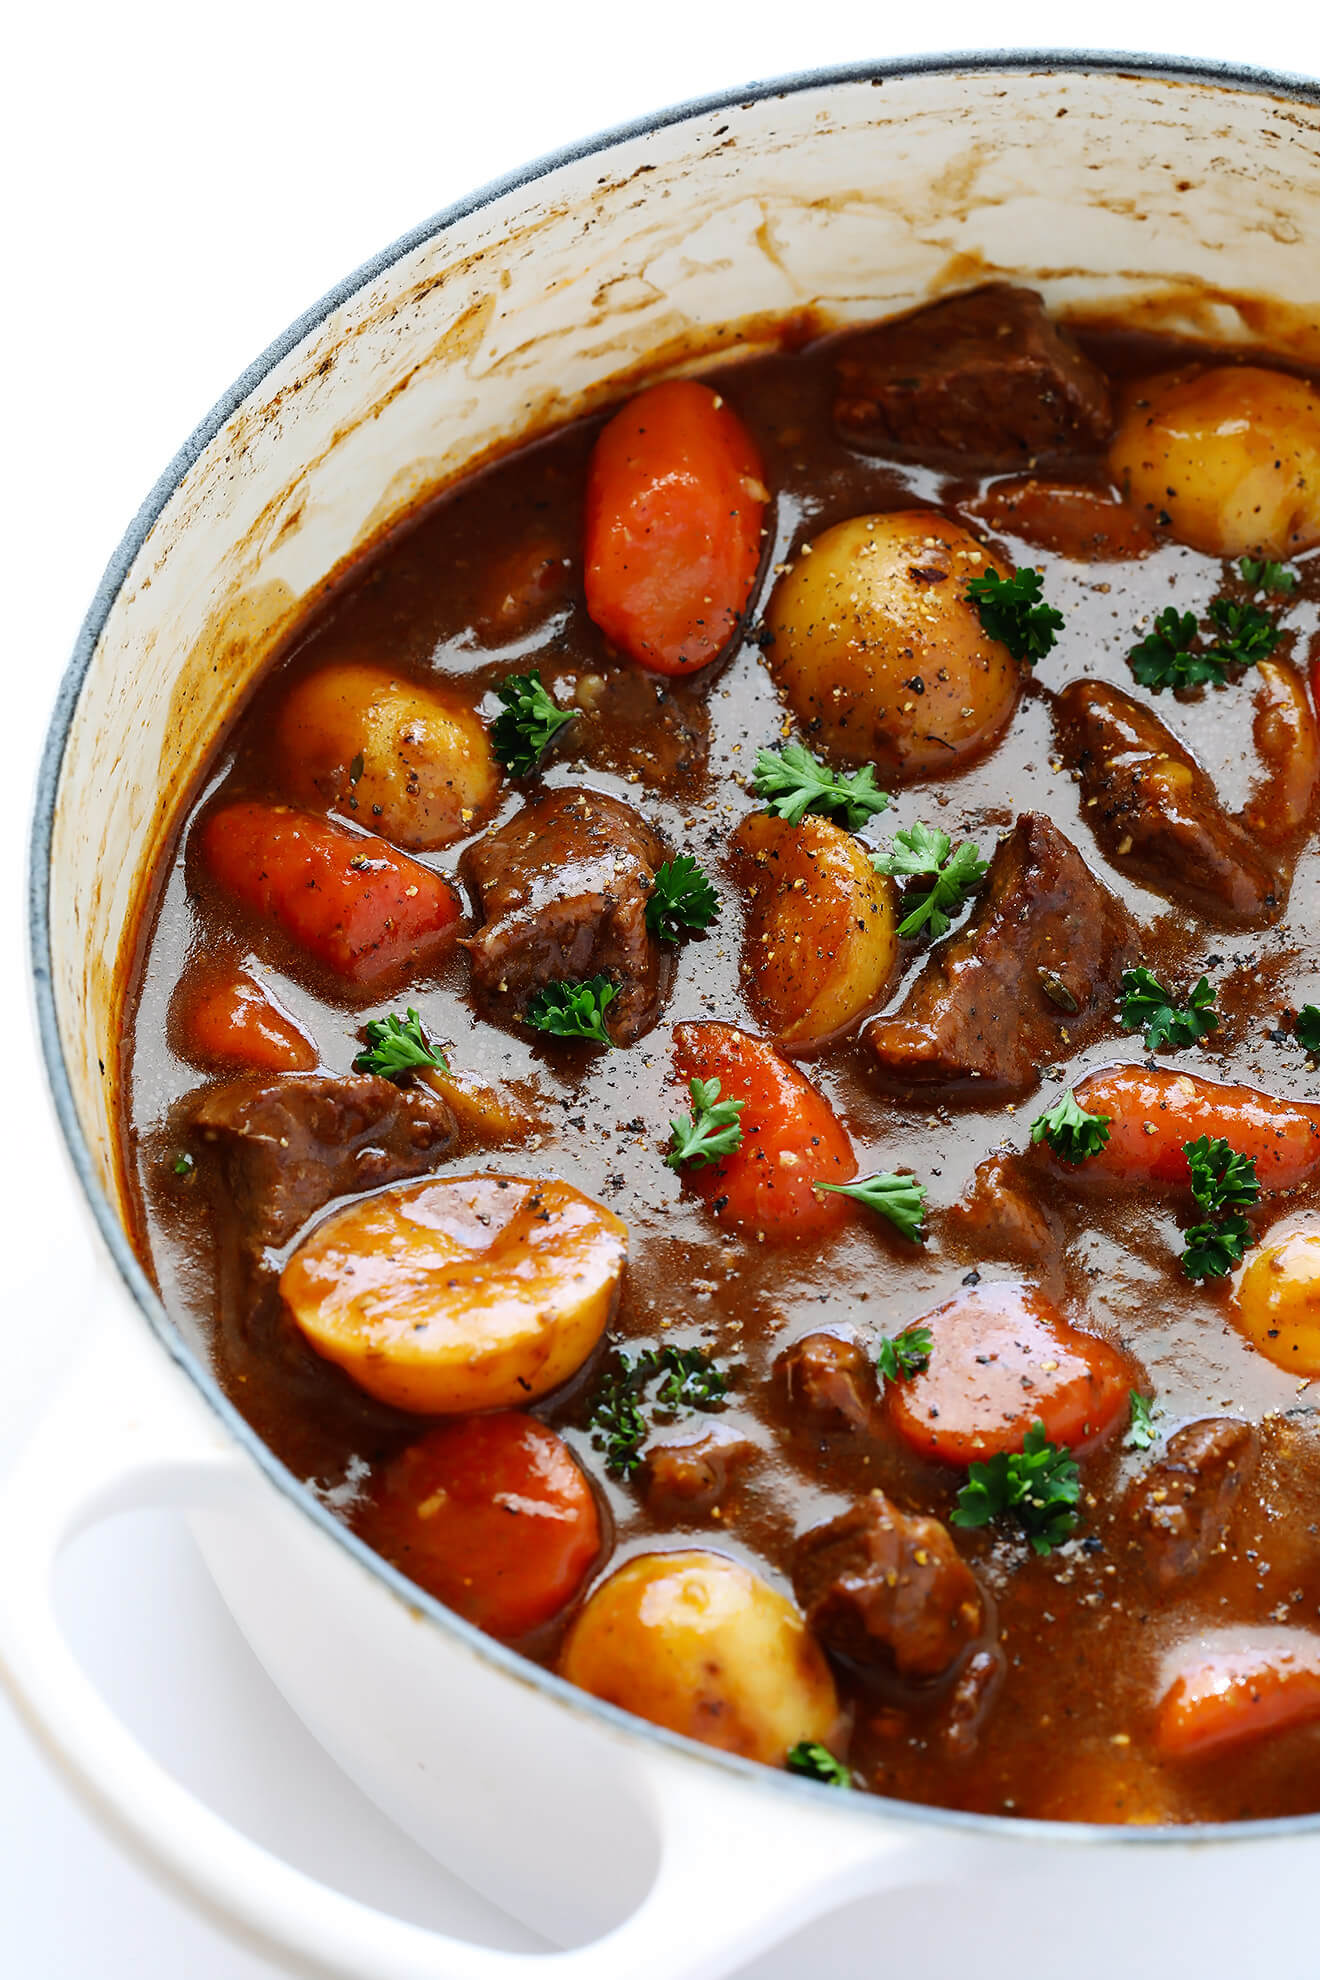 https://www.gimmesomeoven.com/wp-content/uploads/2013/03/Guinness-Beef-Stew-Recipe-1.jpg